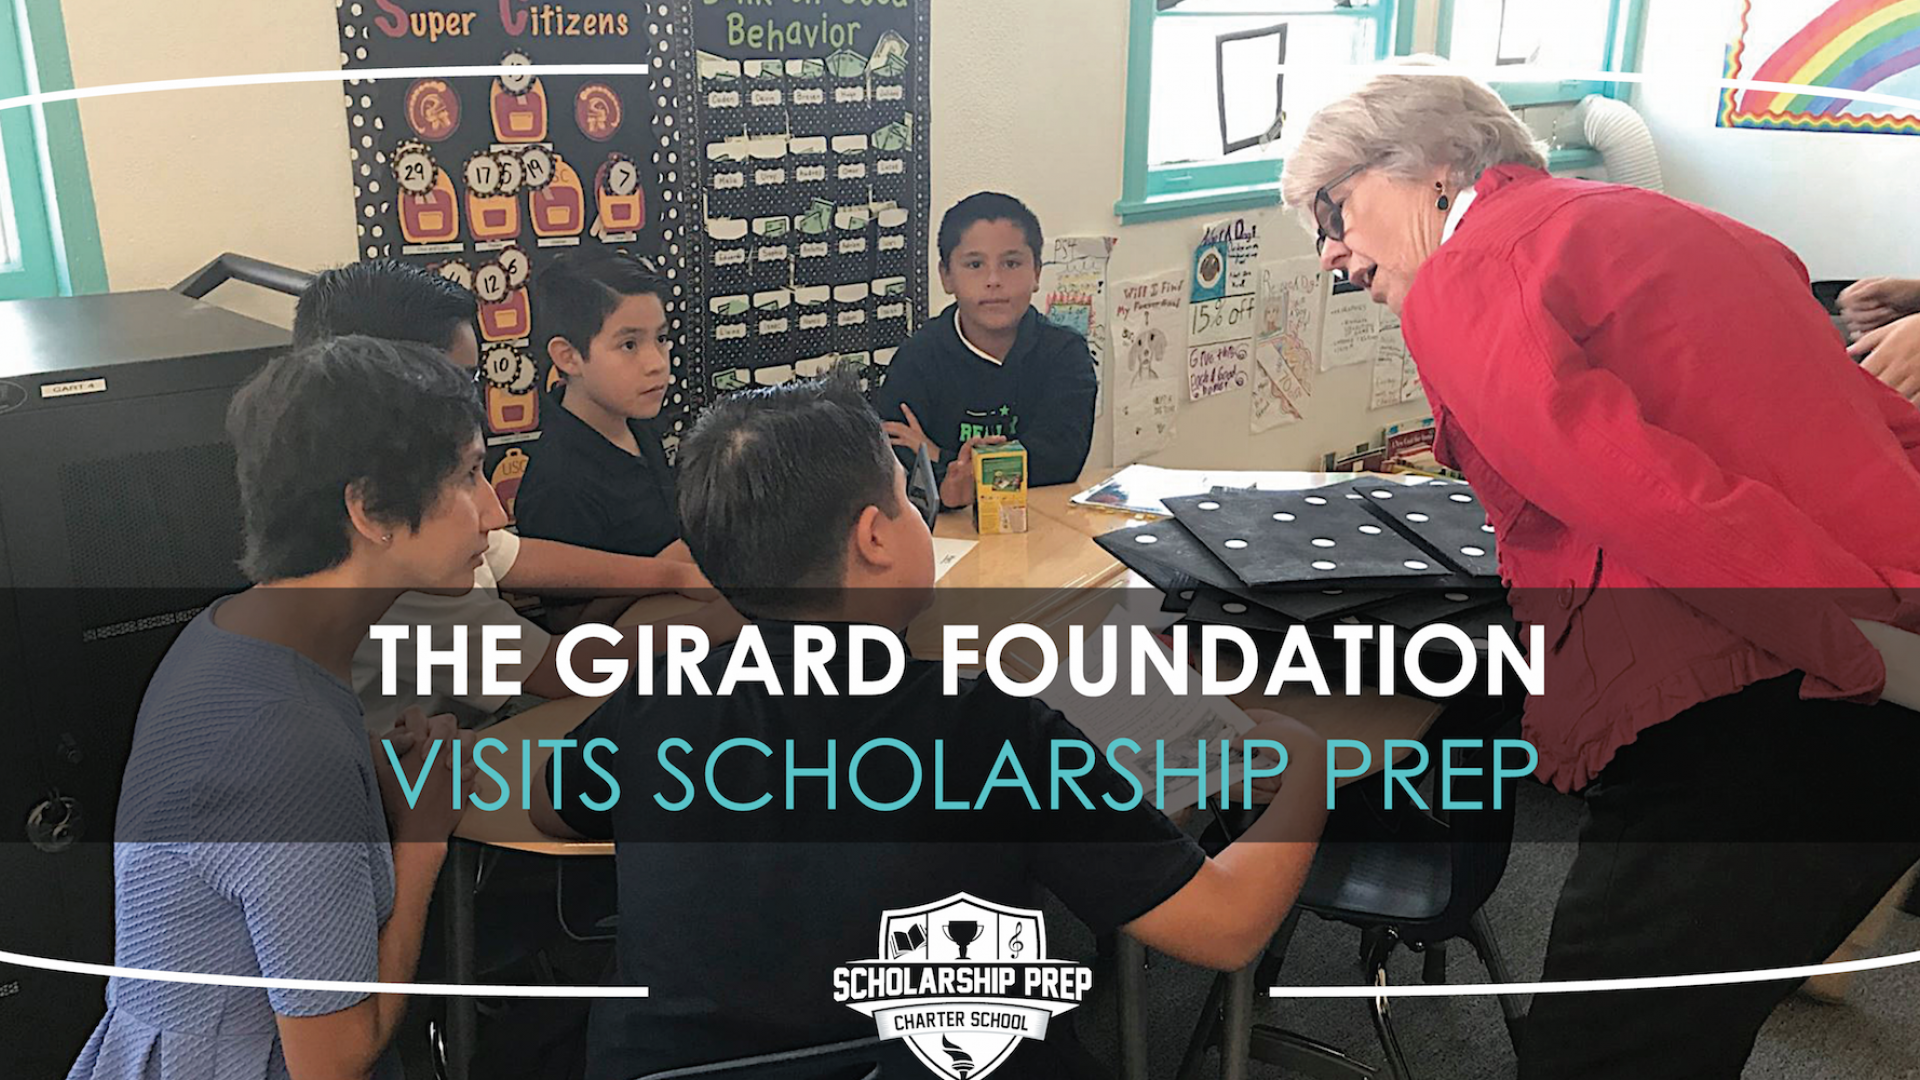 Scholarship Prep - Oceanside Welcomes The Girard Foundation